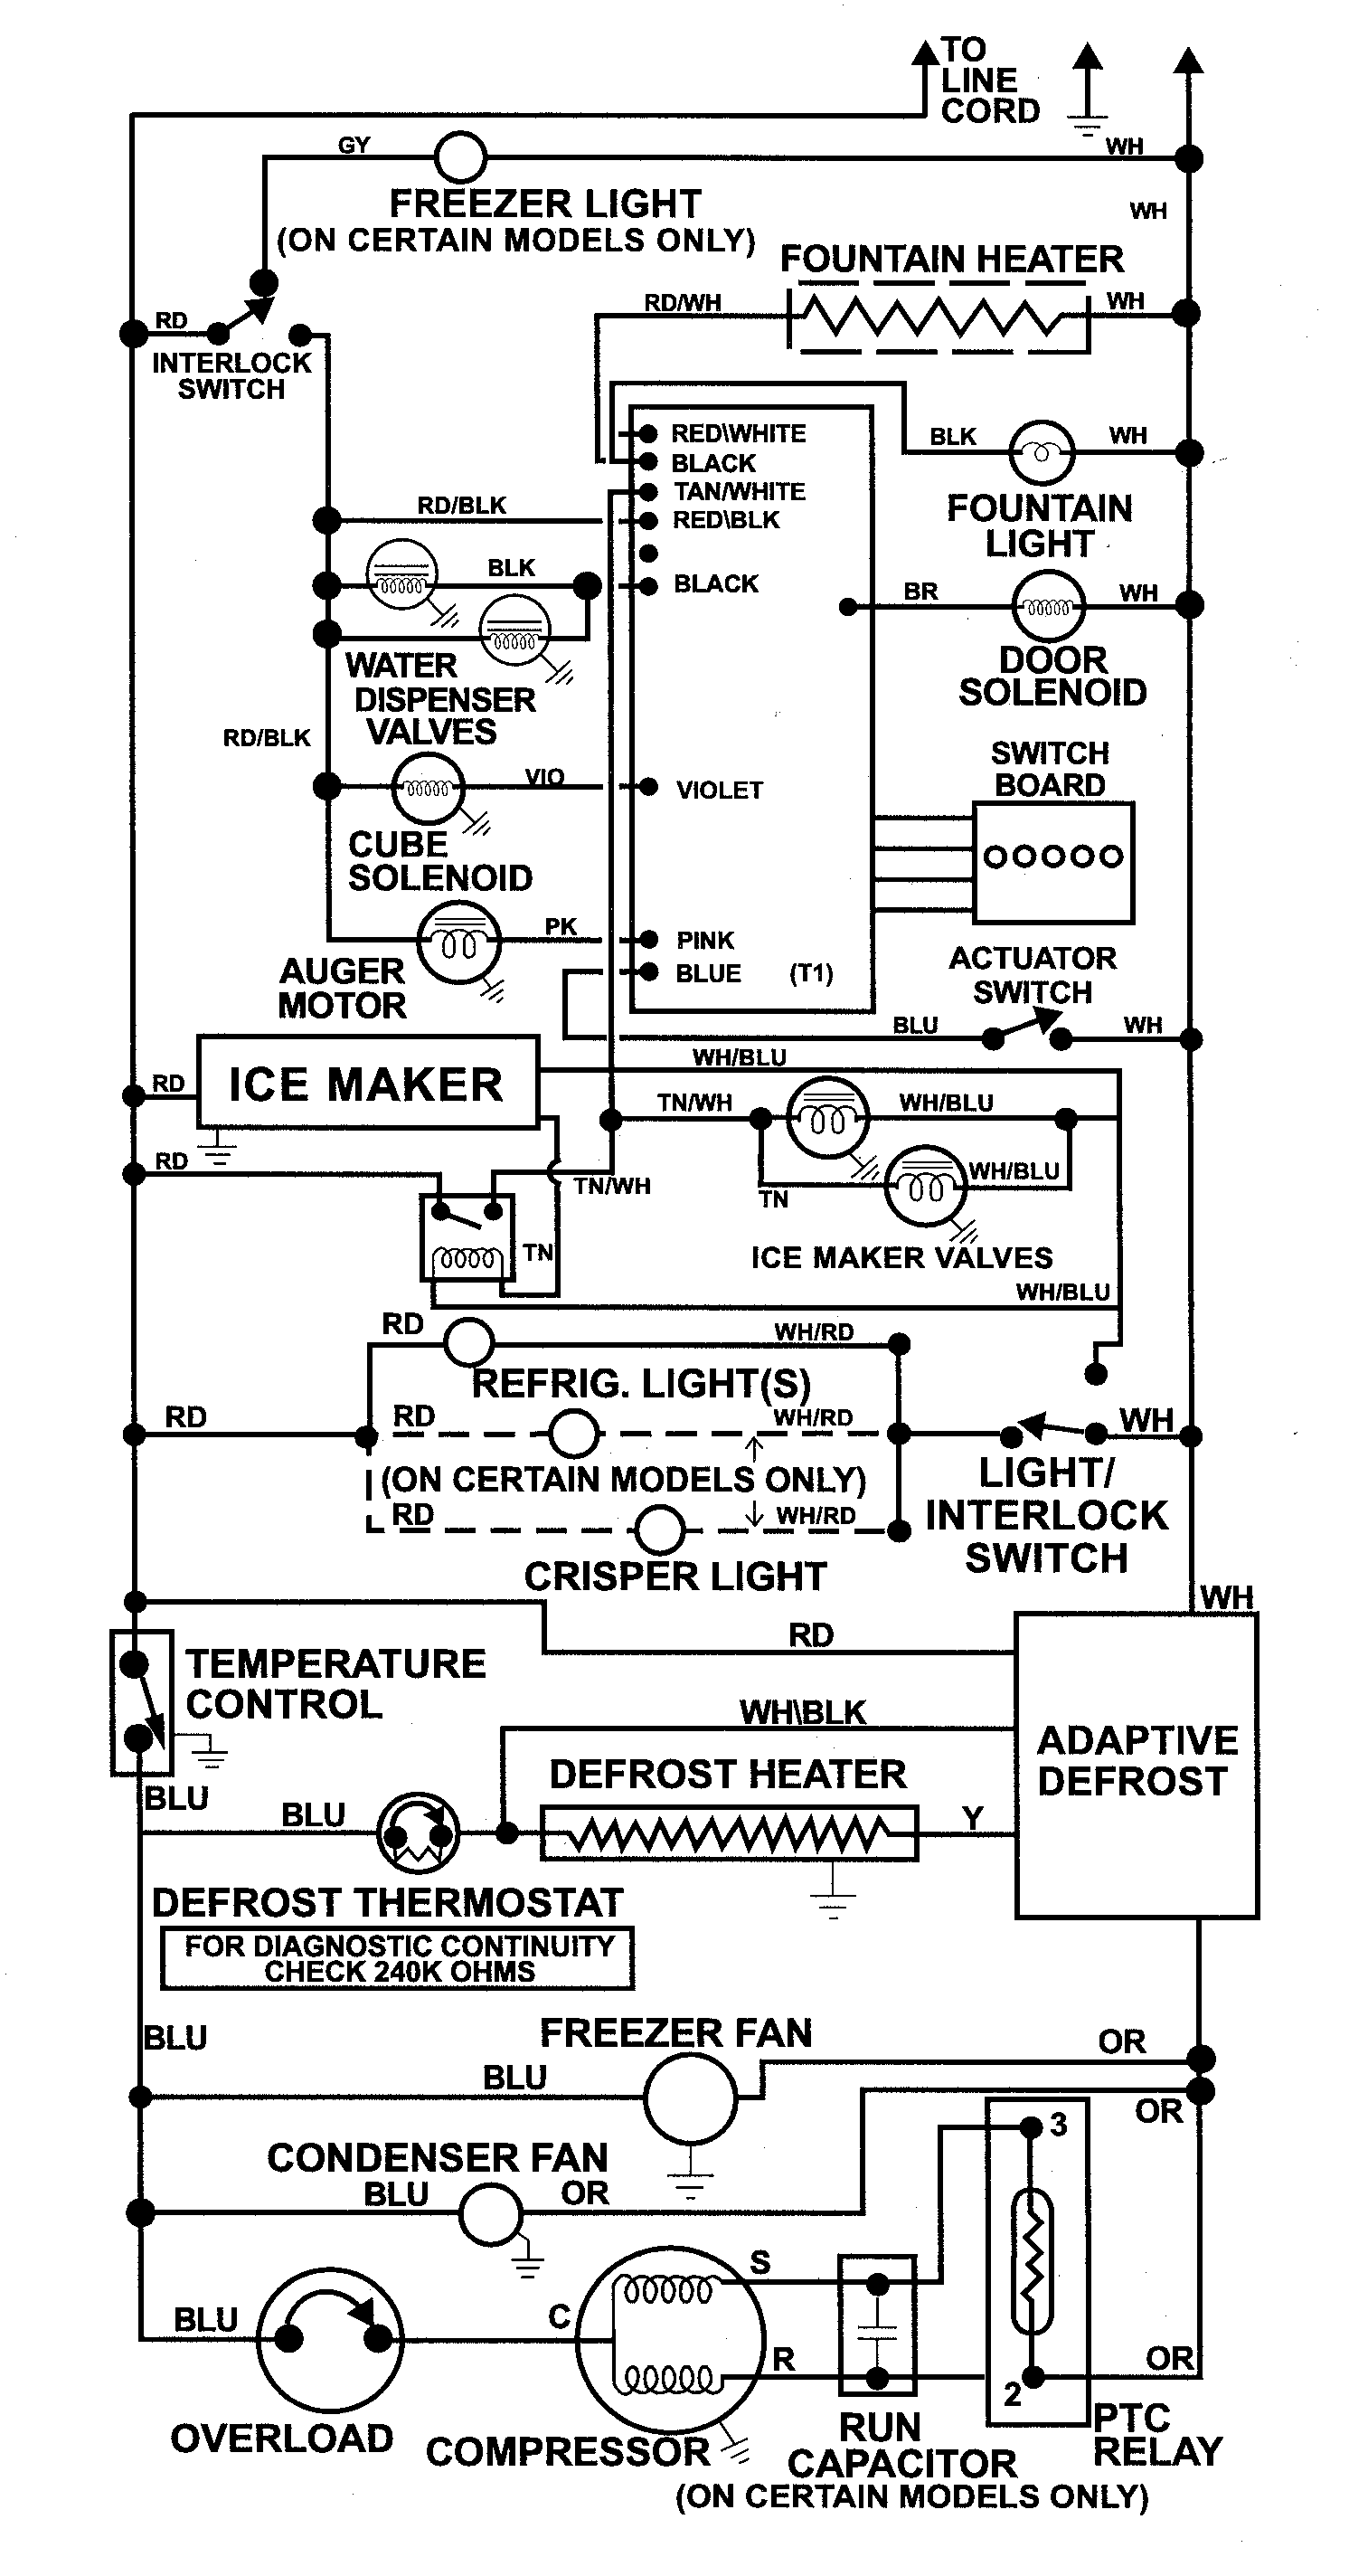 small resolution of maytag refrigerator schematic wiring diagram for you looking for maytag model msd2656deq side by side refrigerator